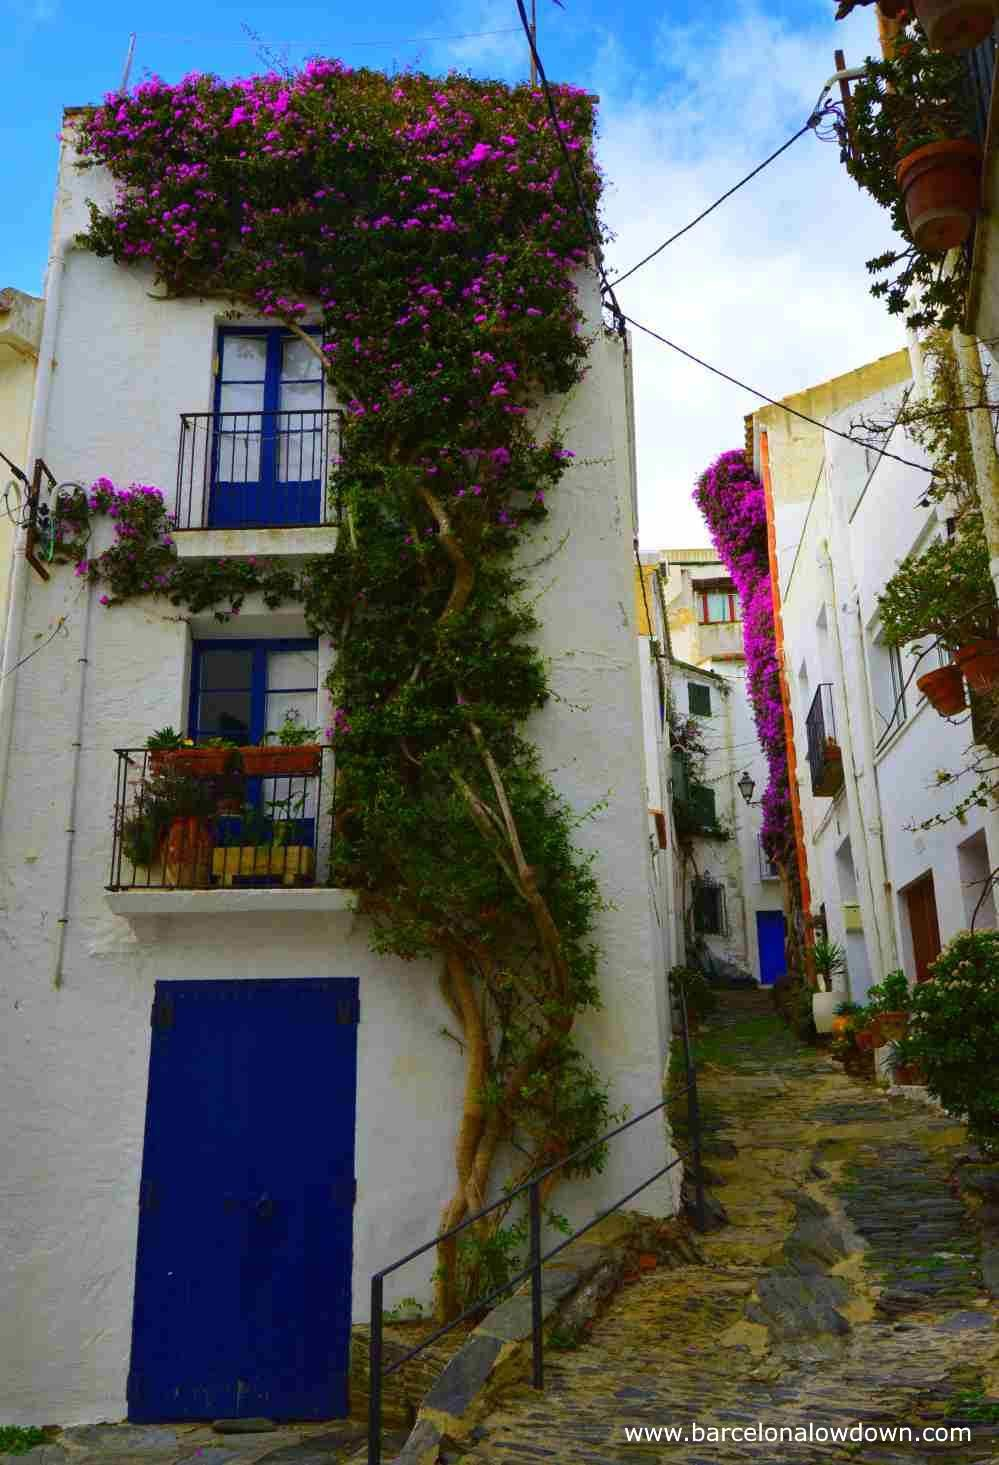 Narrow streets in Cadaqués, Spain